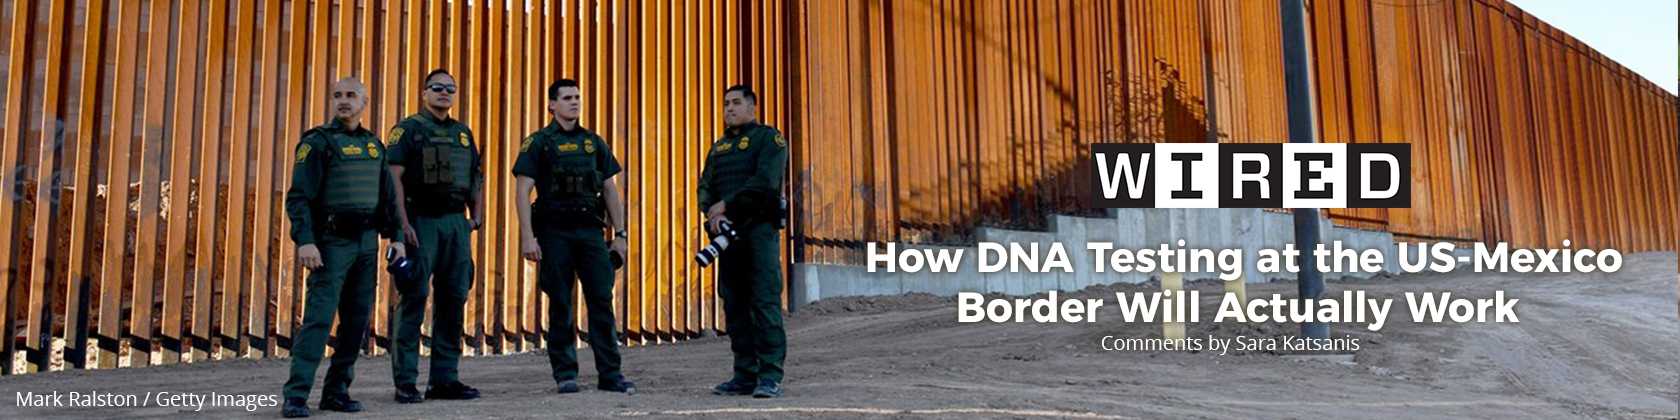 Guards at the US-Mexico Border